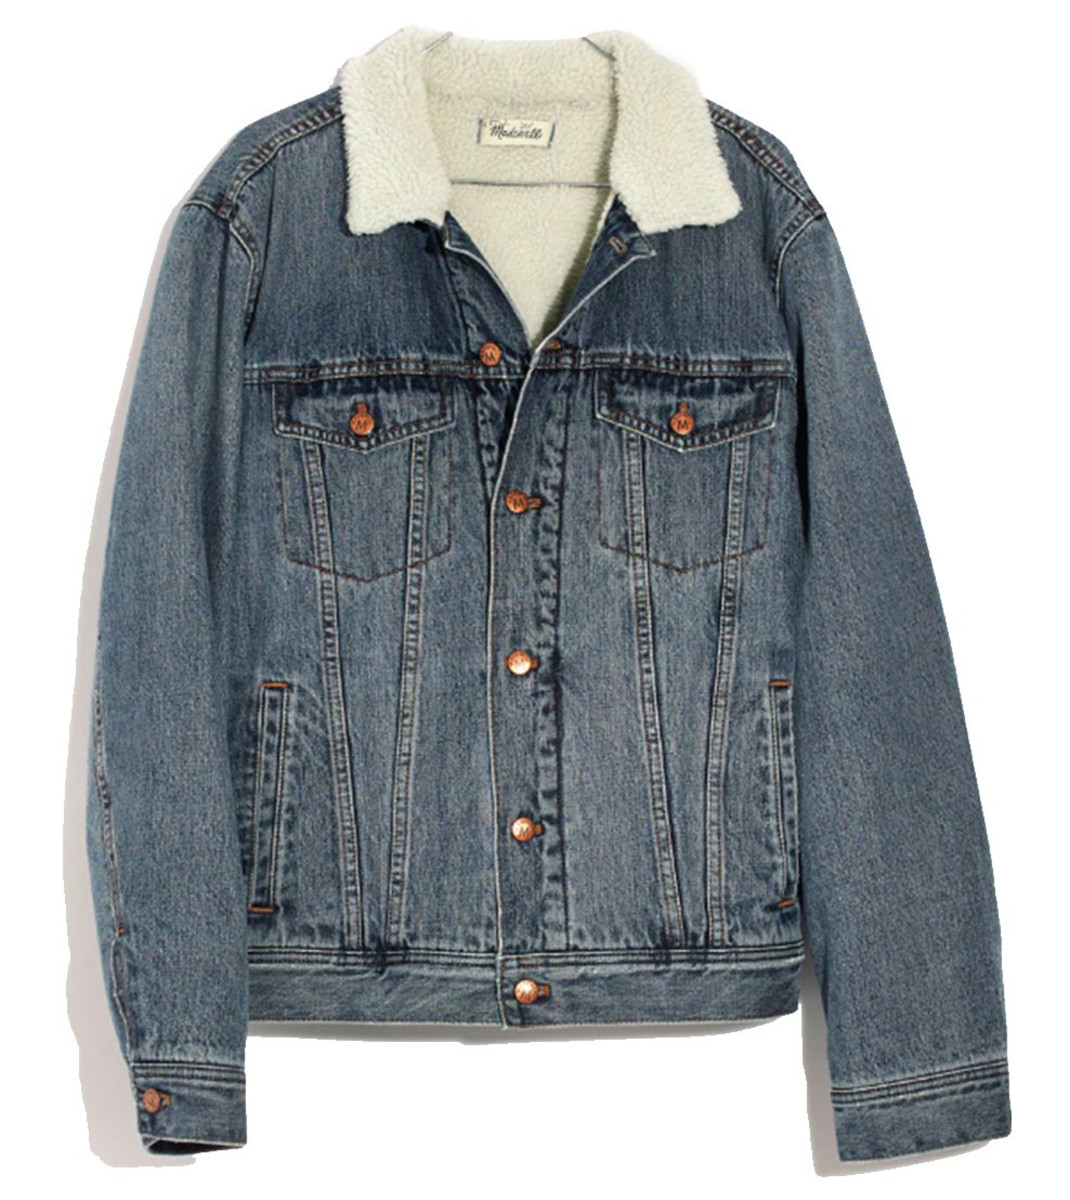 Madewell Men's Sherpa Classic Jean Jacket, $175, available here.